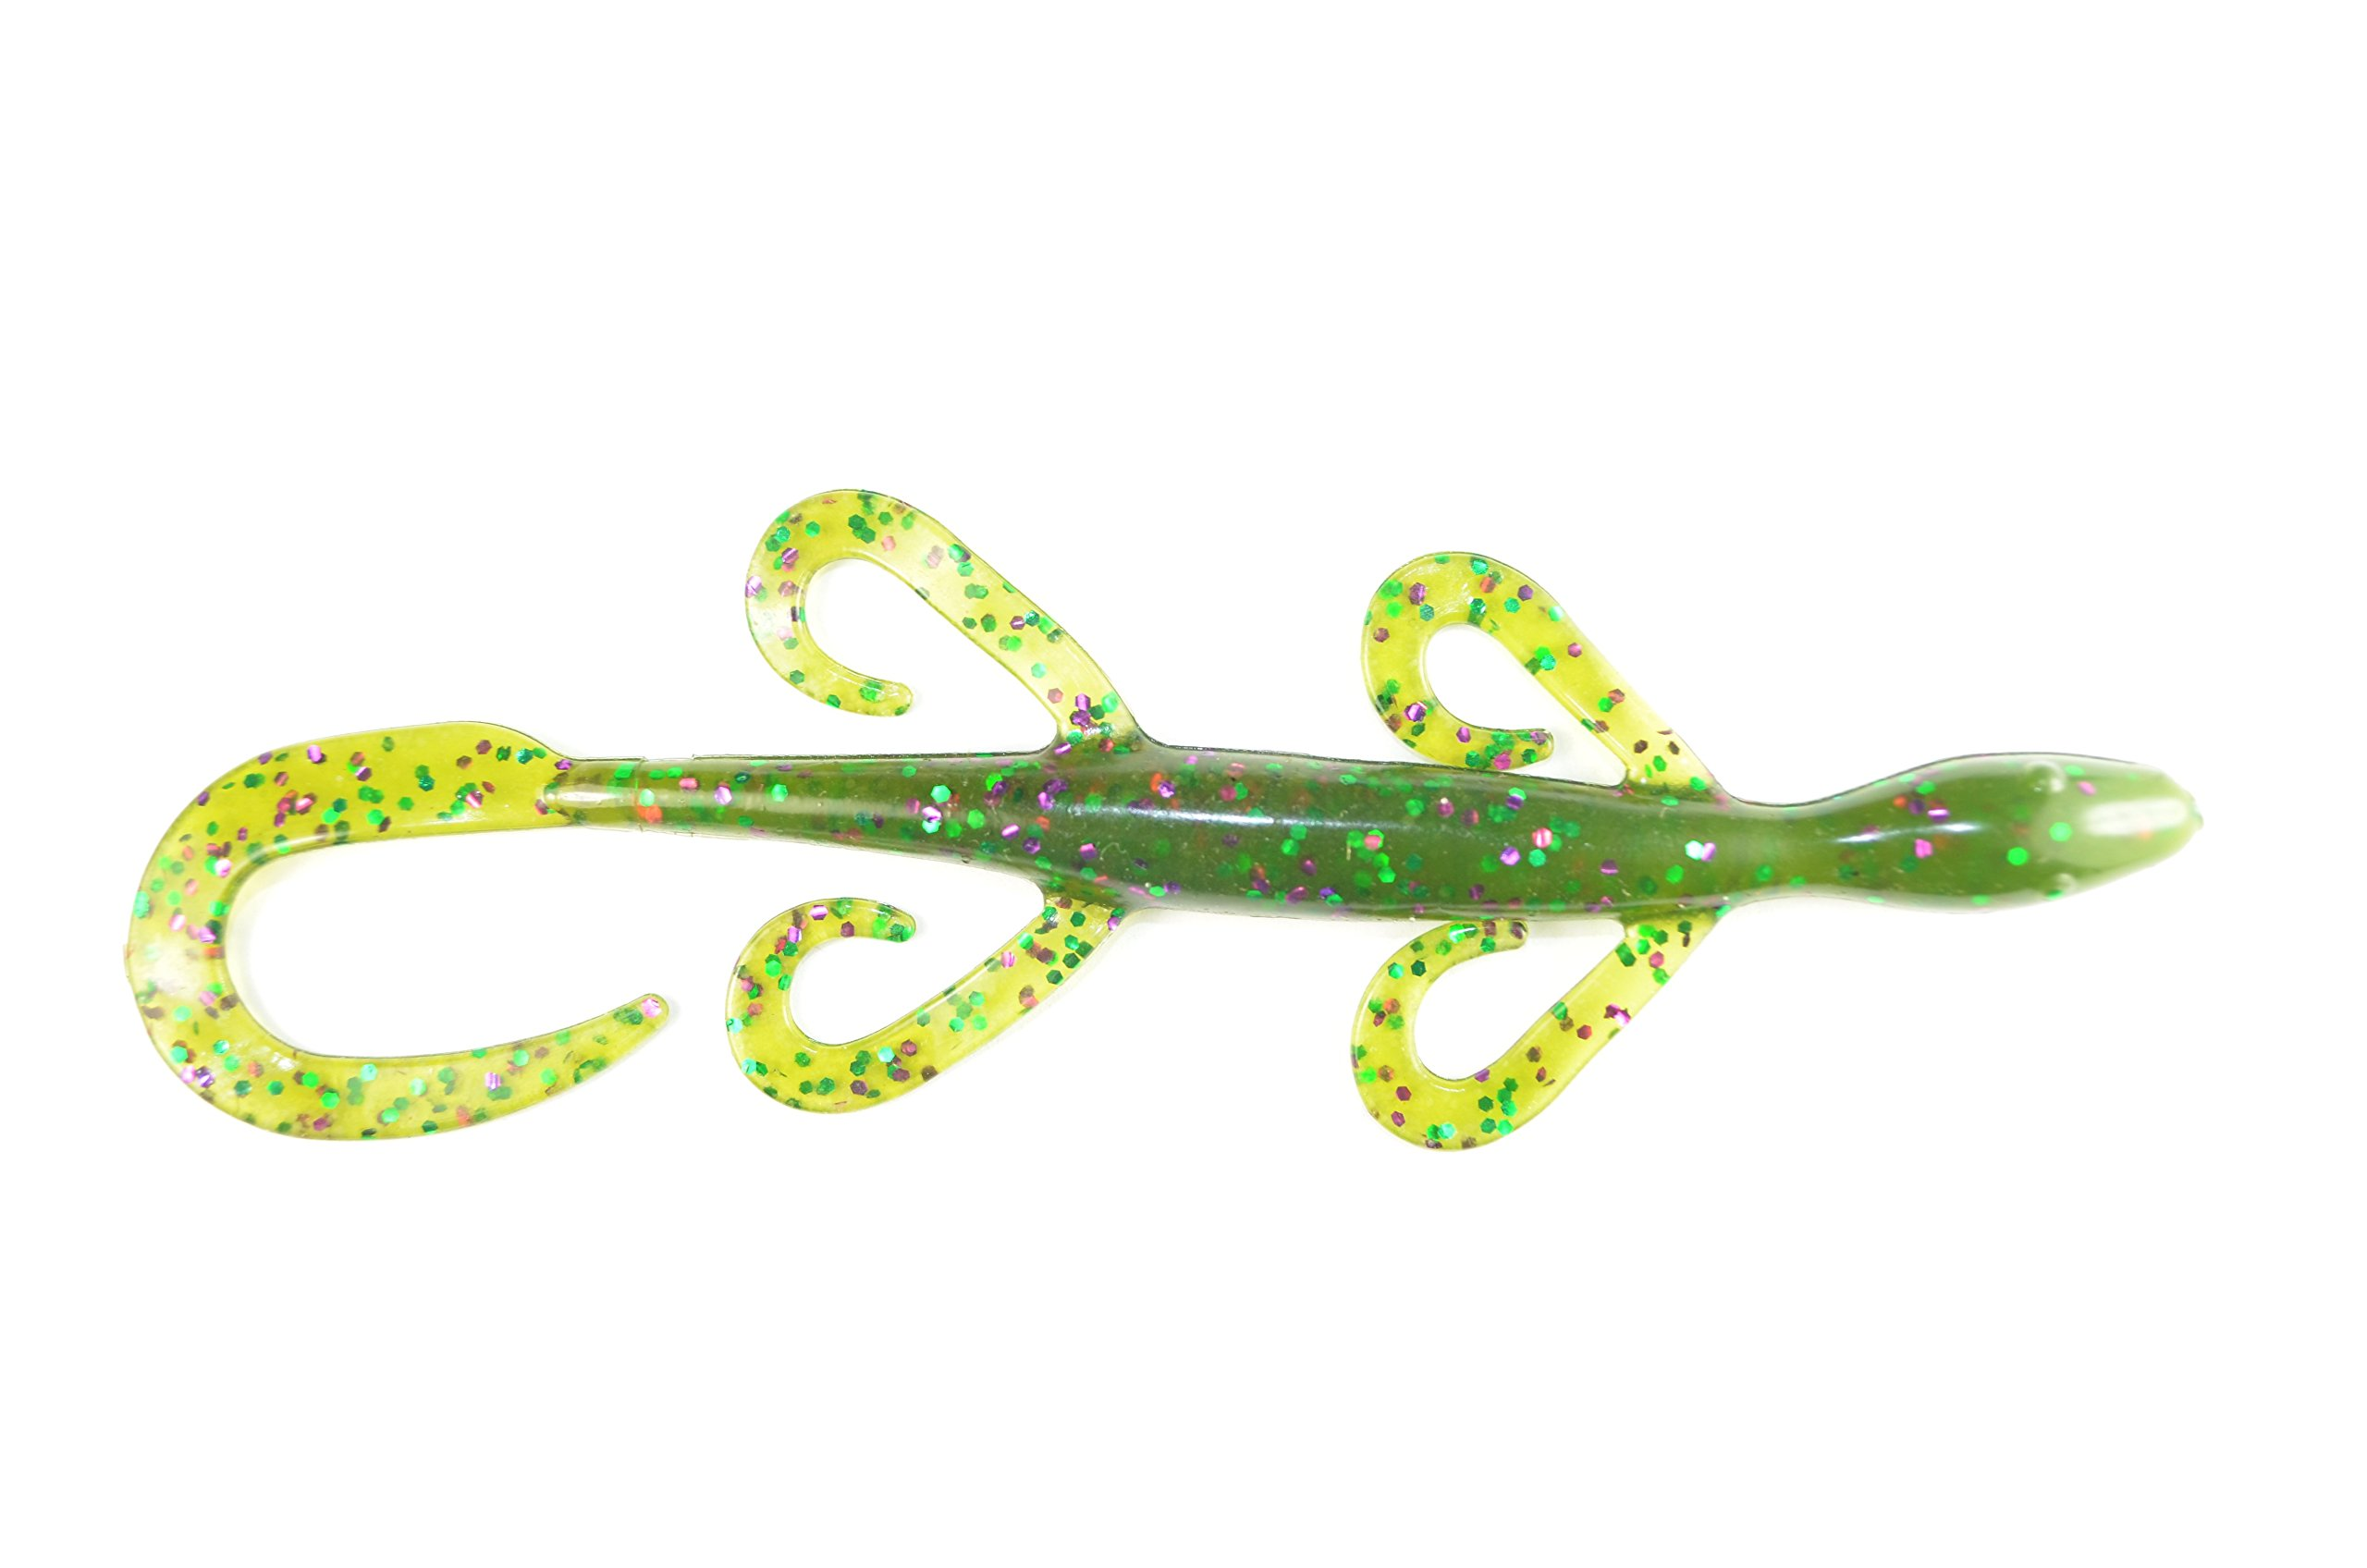 6 Inch Watermelon Candy Lizard Fishing Soft Bait